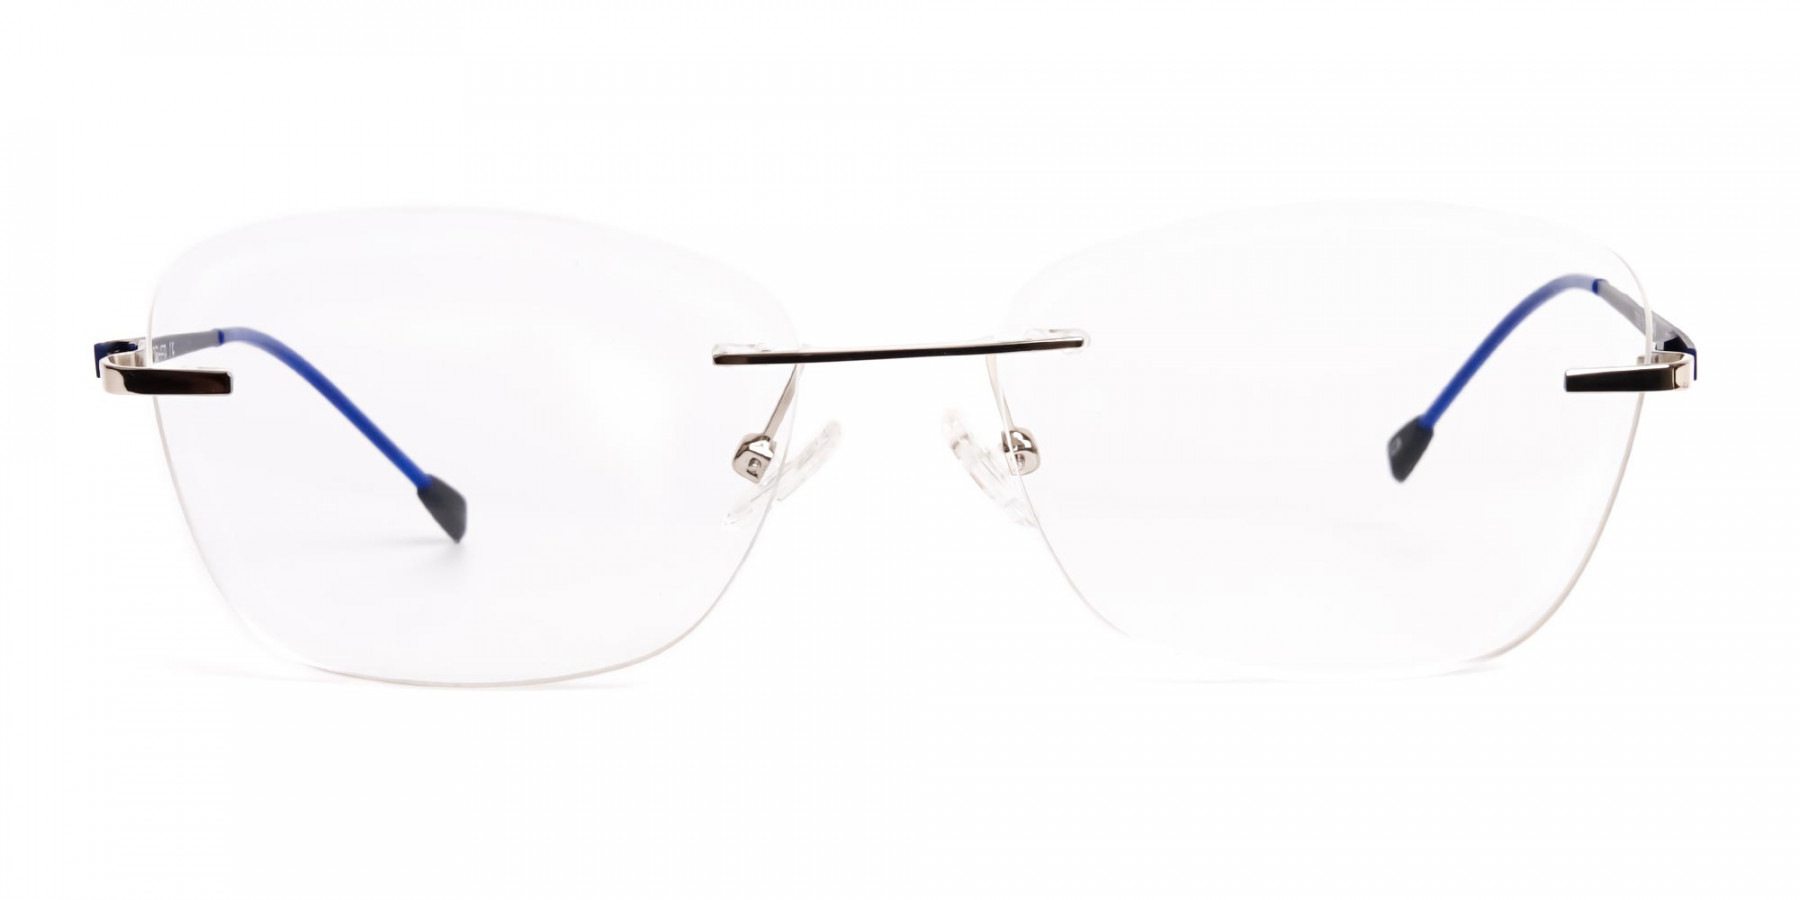 silver-and-blue-cateye-rimless-glasses-frames-1